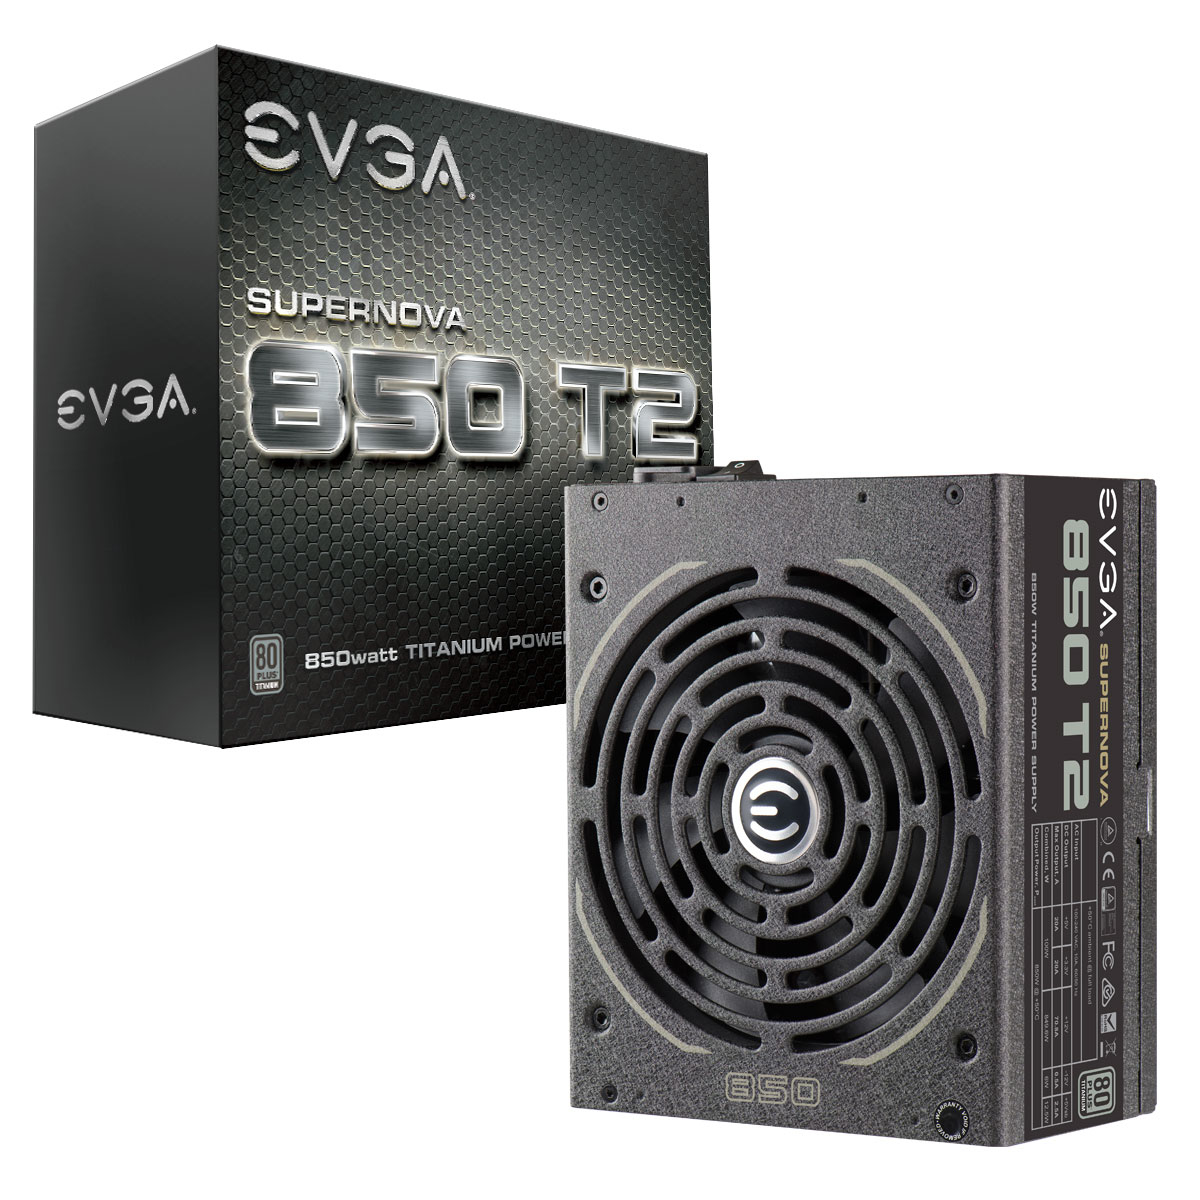 EVGA 220-T2-0850-X3 850W Black power supply unit